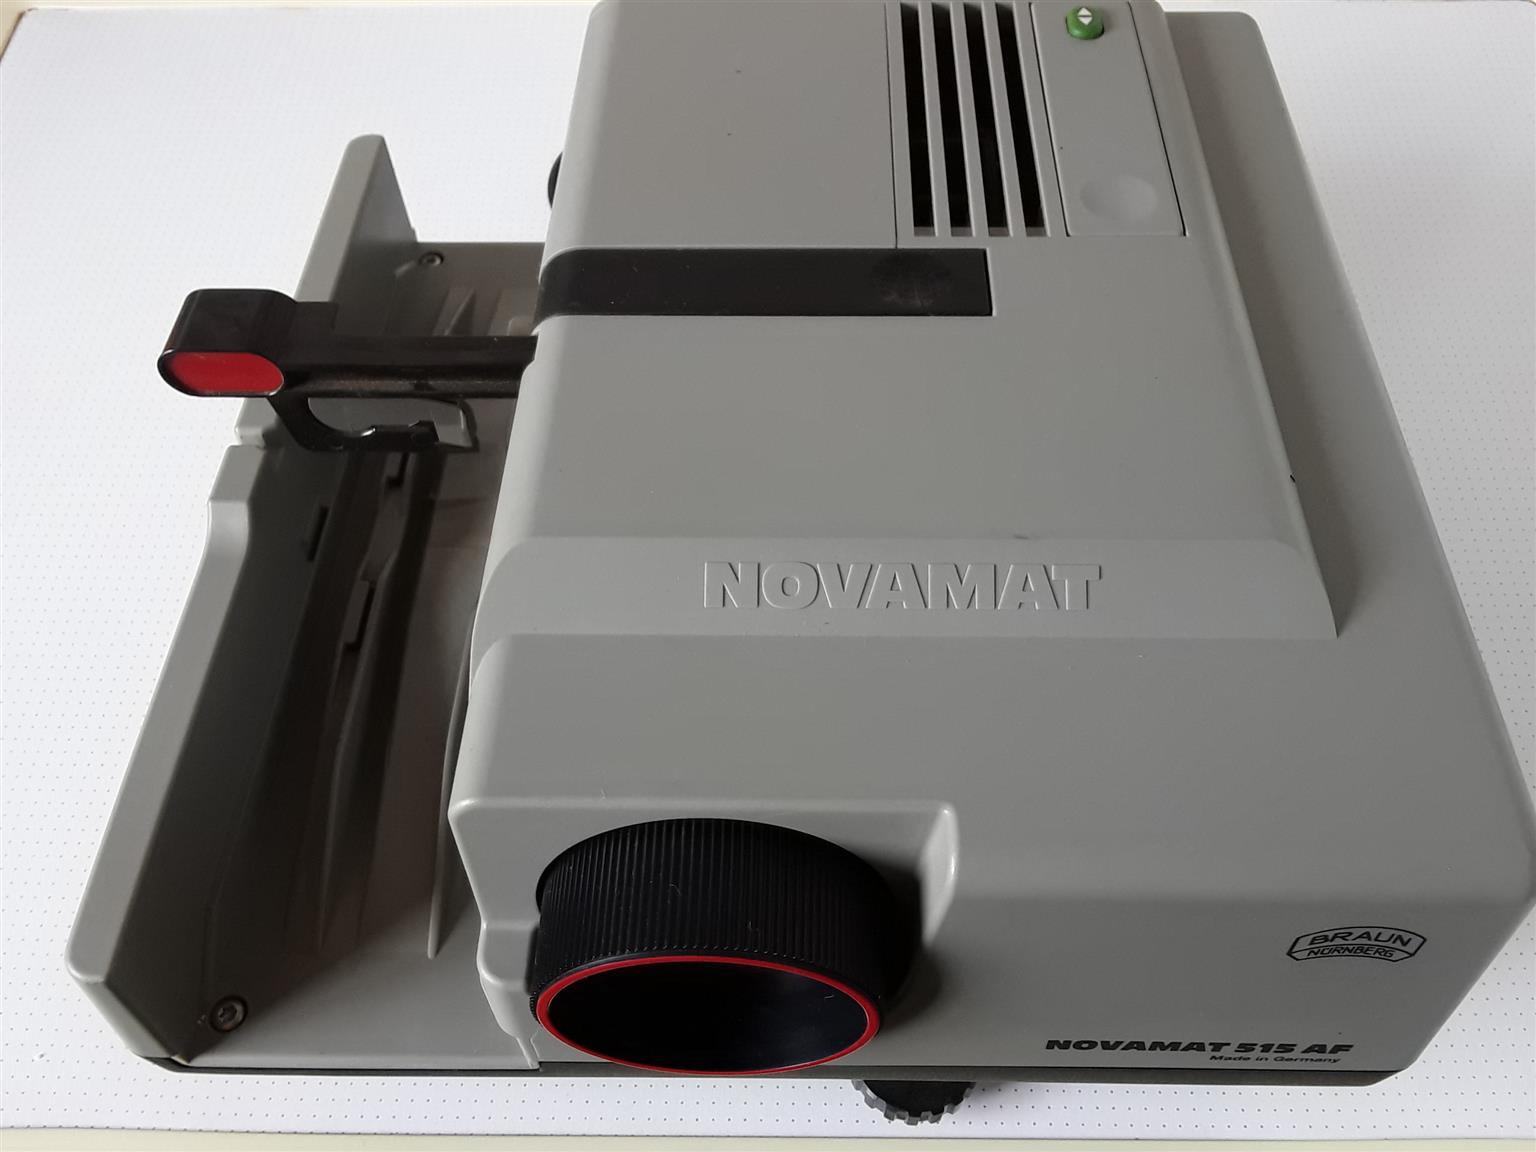 Projector NOVAMAT 515 AF Made in Germany. With built-in wired Remote. Adjustable angle. .